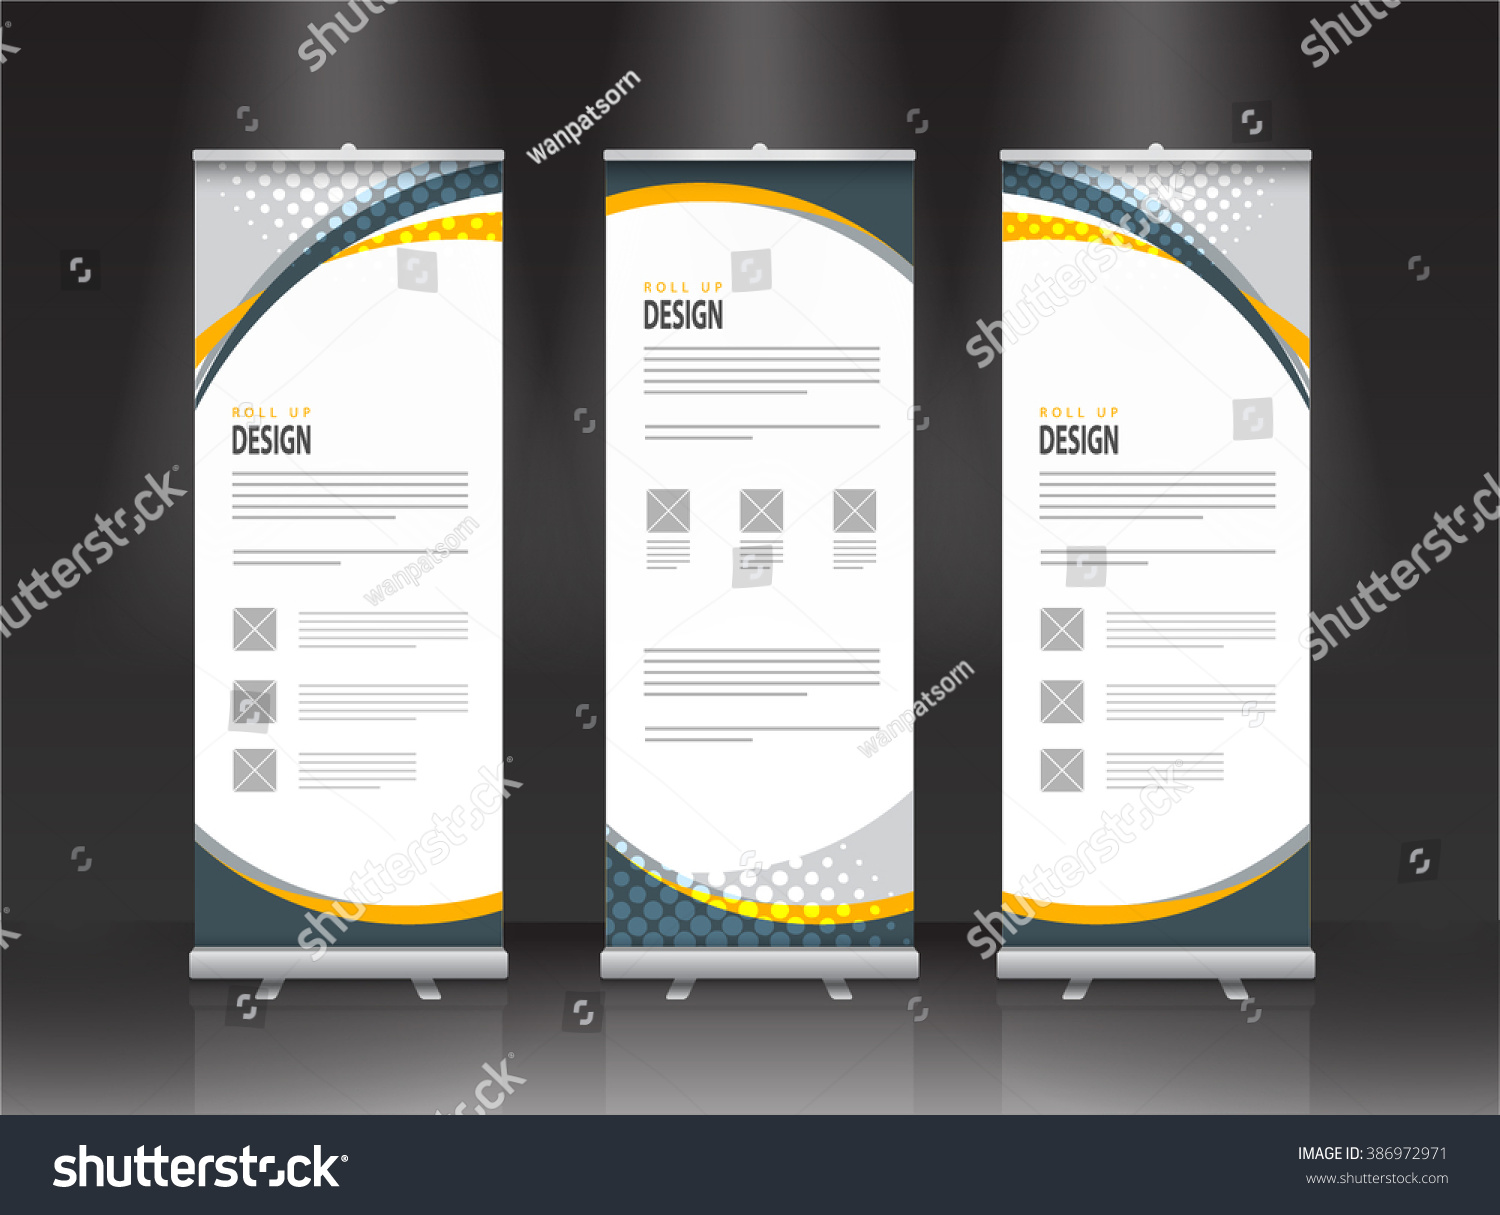 Design for roll up banner - Roll Up Banner Stand Design Vector